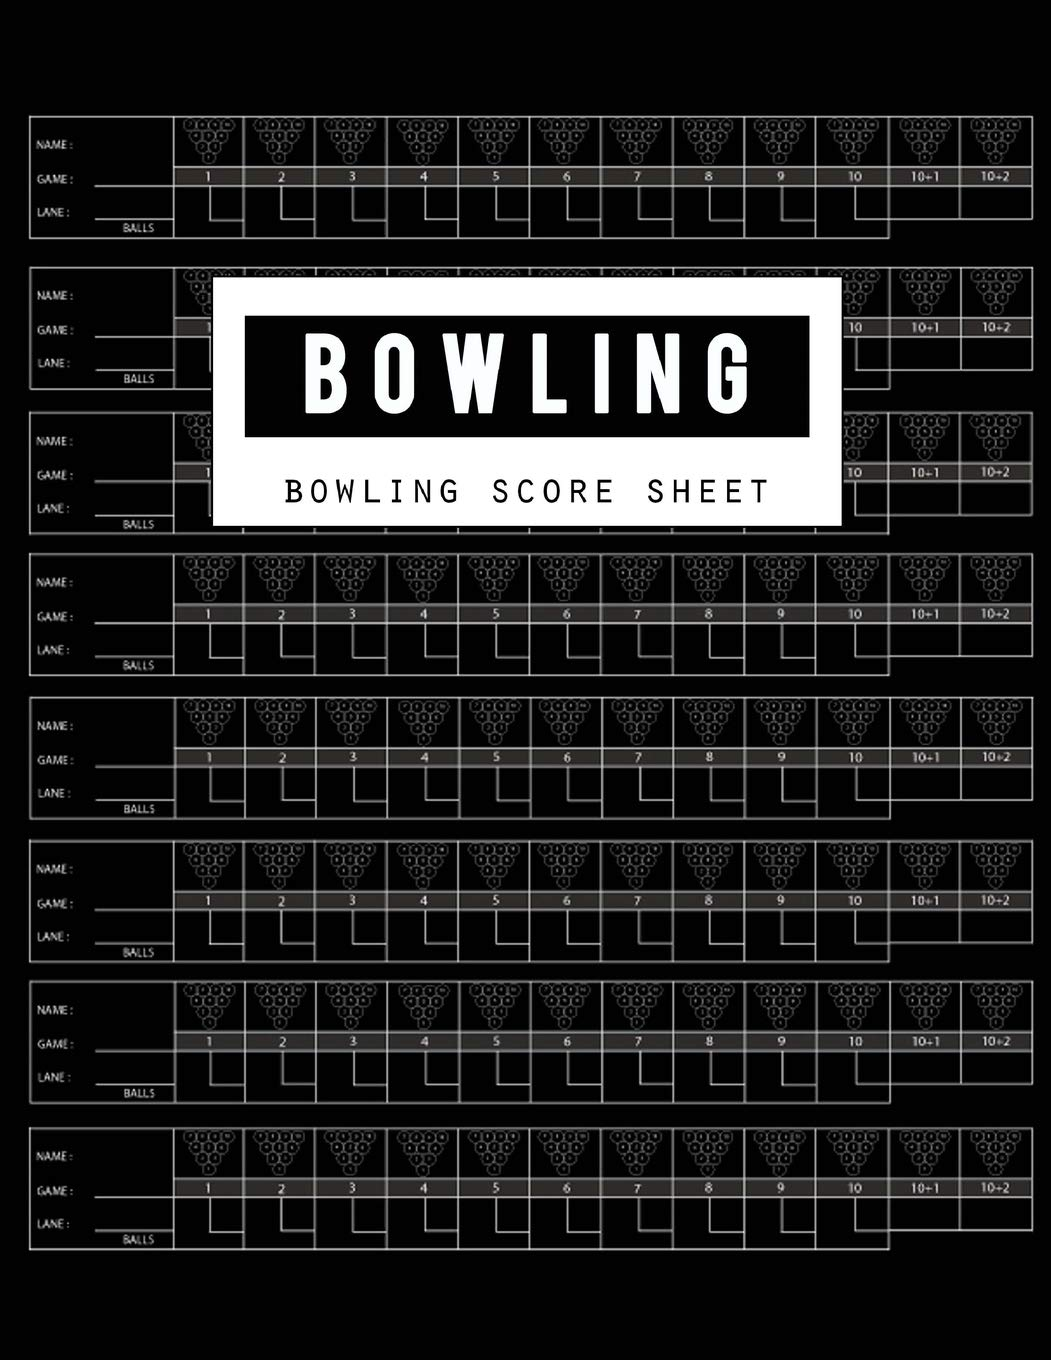 Bowling Score Sheet | Bowling Score Sheet Bowling Game Record Book Bowler Score Keeper